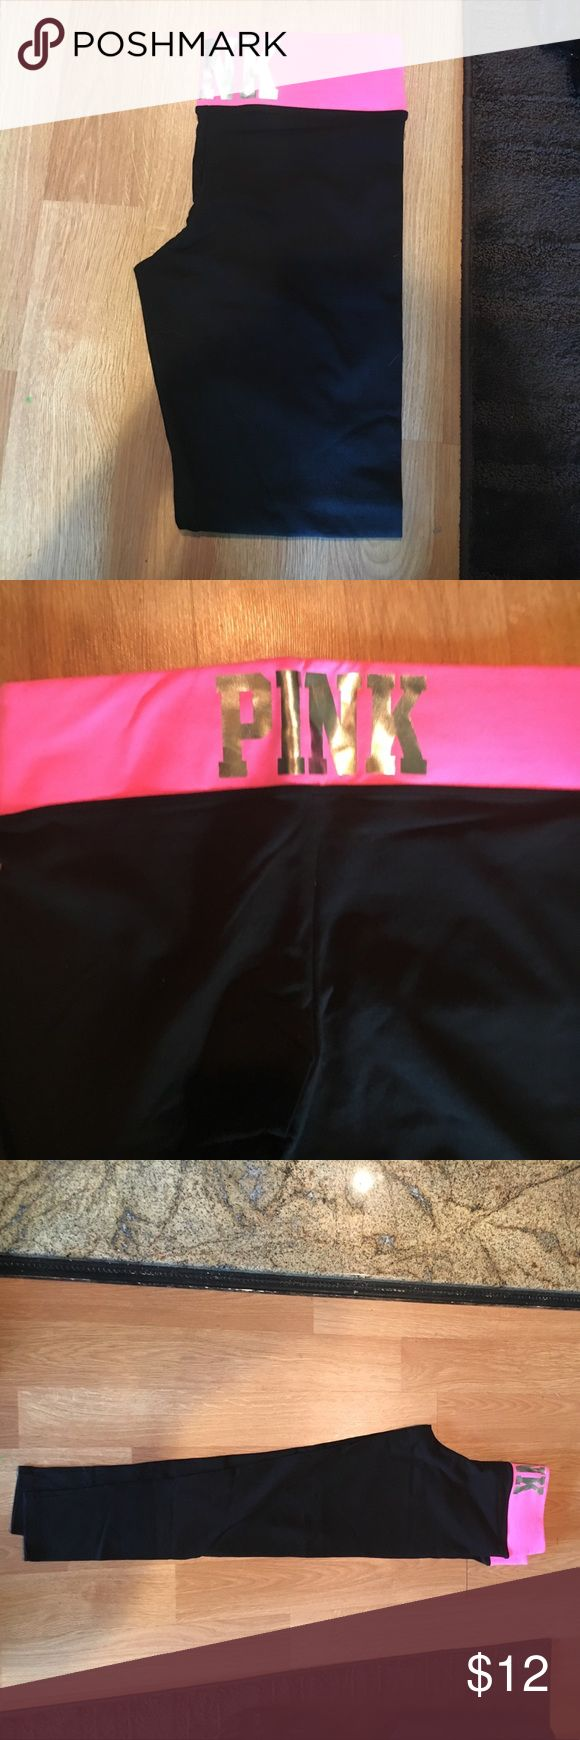 Victoria's Secret Pink Yoga Pants Never been worn Victoria's Secret Yoga Pants. They have a skinny leg. They are black, pink and silver. They are a size medium. PINK Victoria's Secret Pants Straight Leg